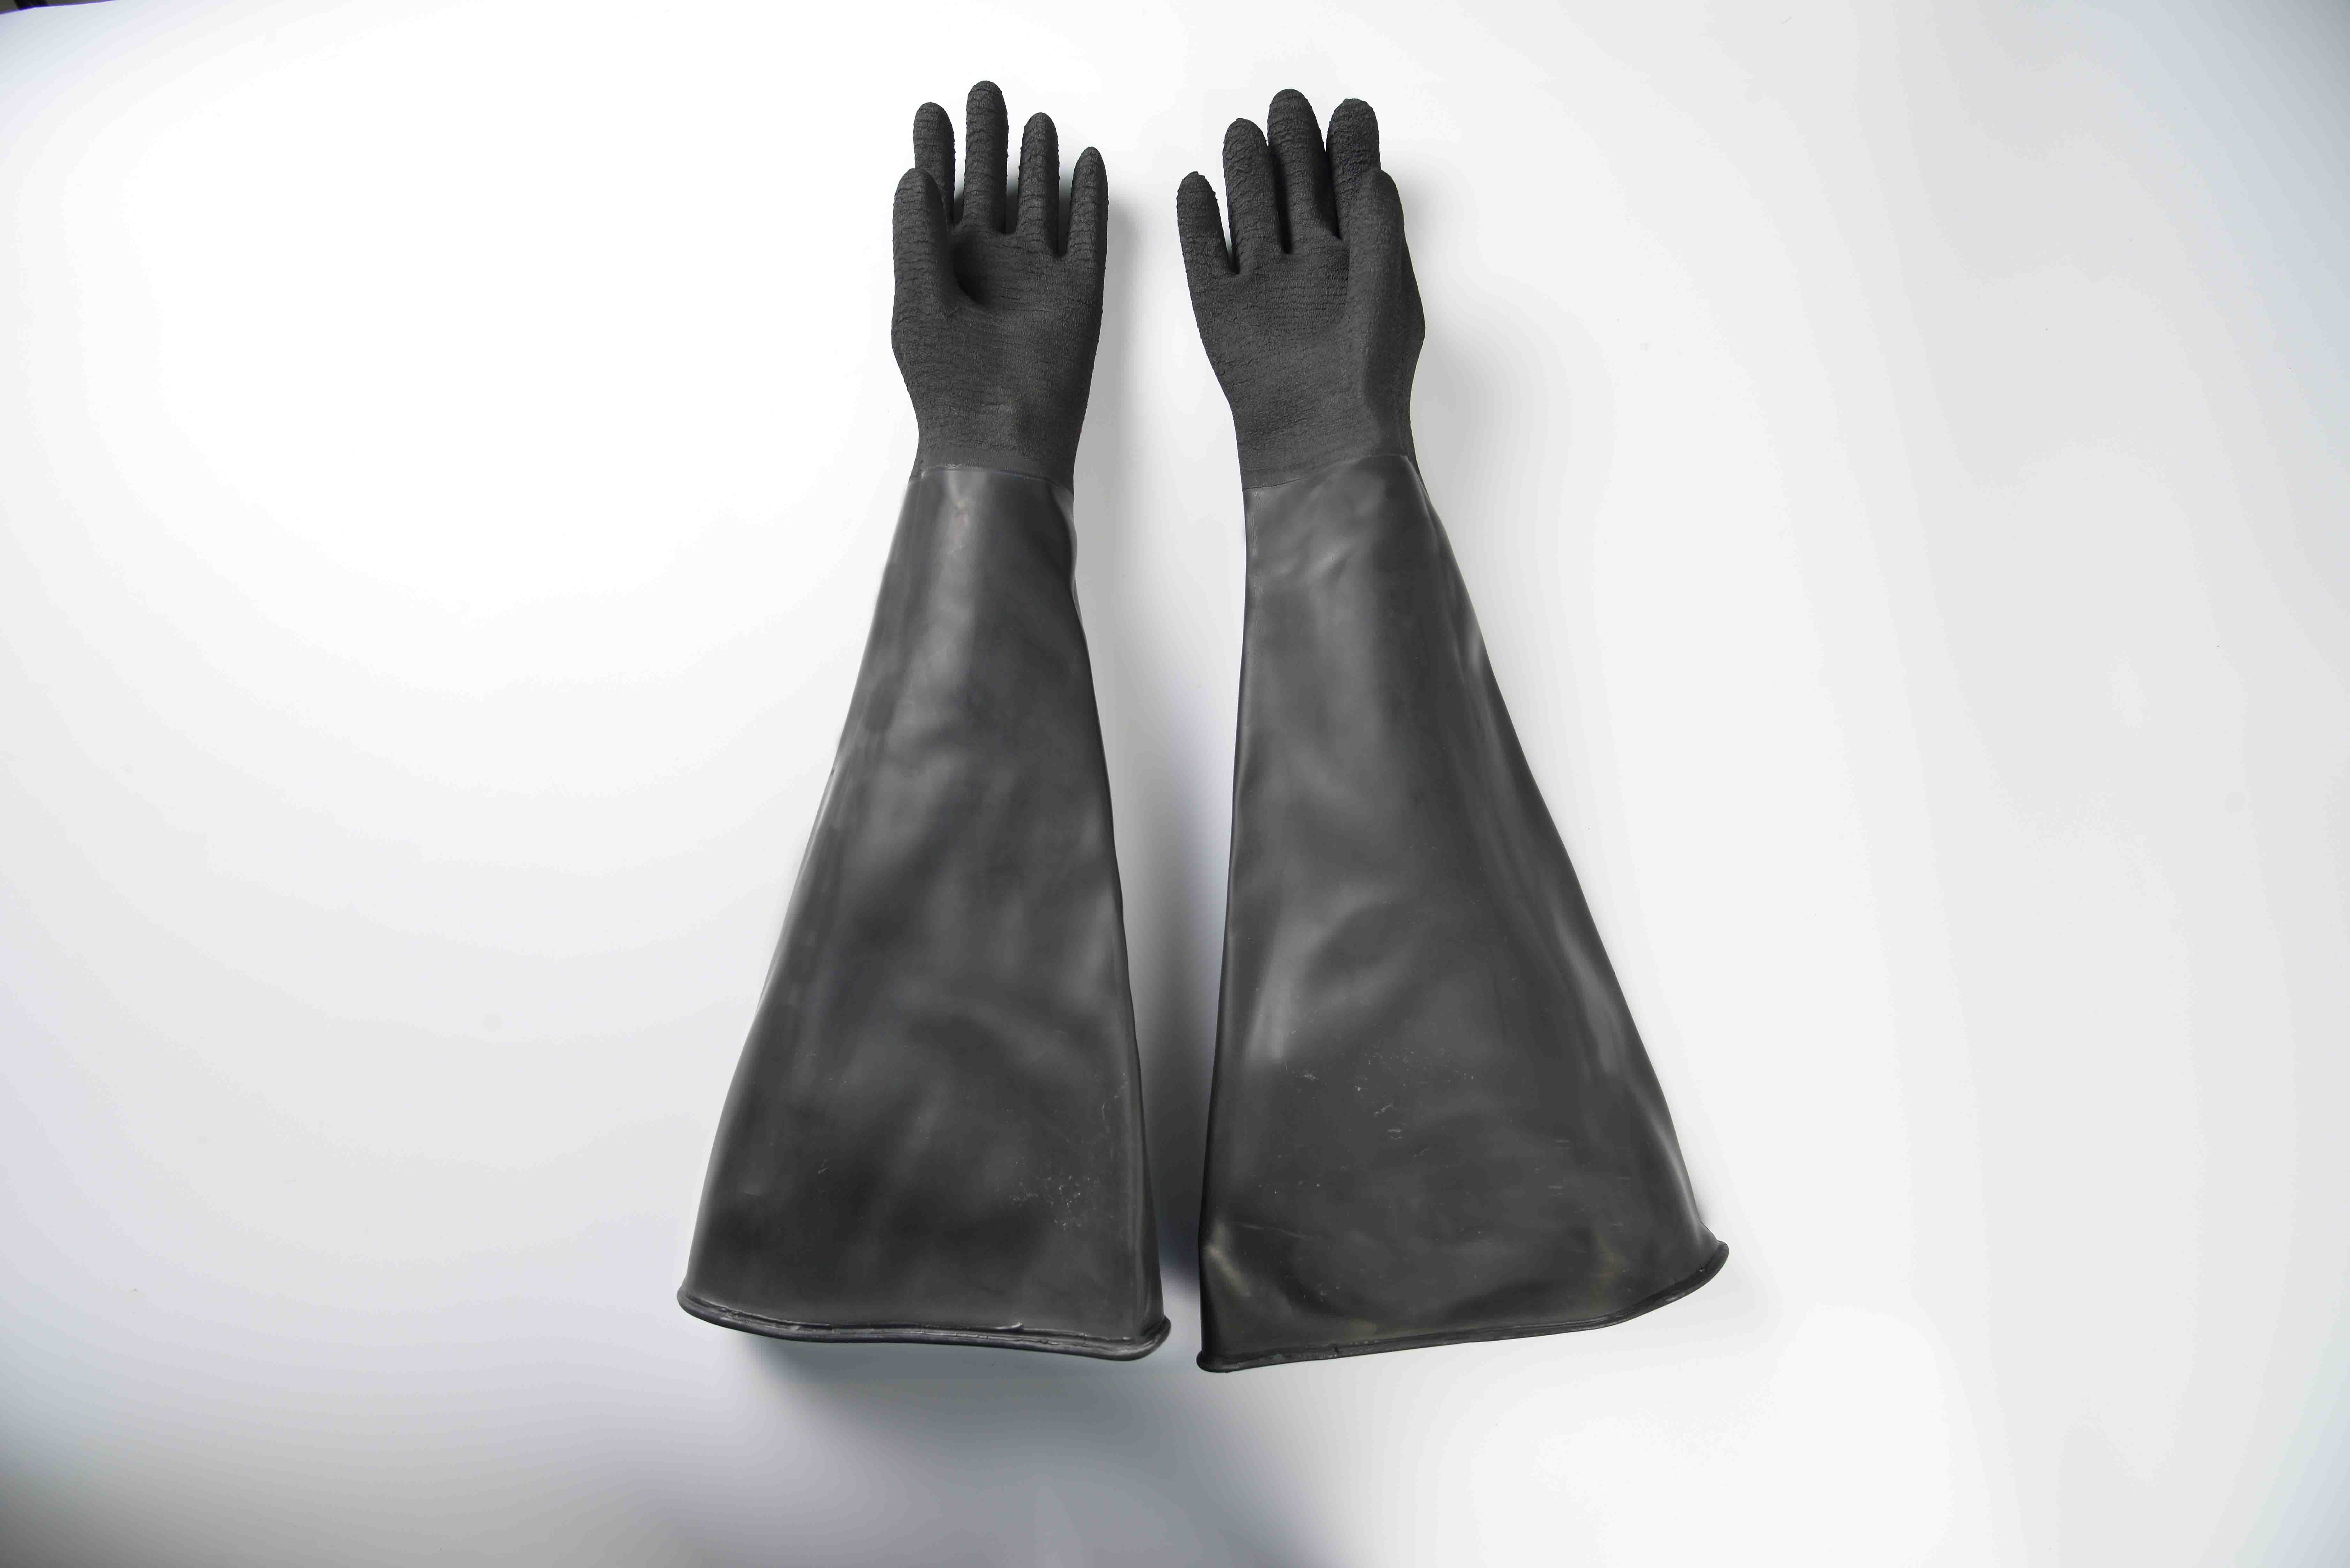 Hot-selling attractive price 26″ Industrial rubber glove-rough finish Singapore Factory